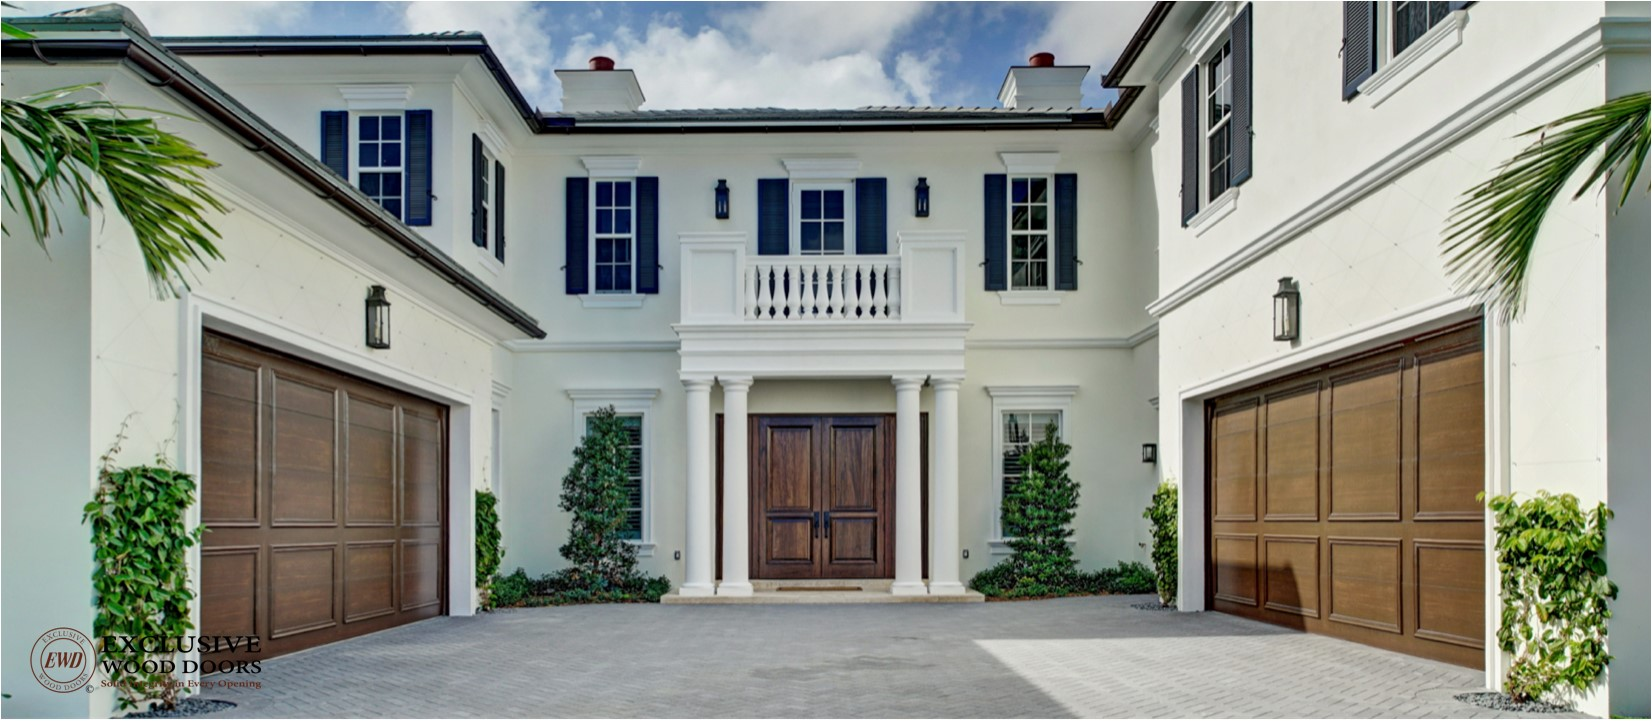 Image Courtesy of J.P. DiMisa Luxury Homes Inc. & Exclusive Wood Doors - custom wood exterior doors